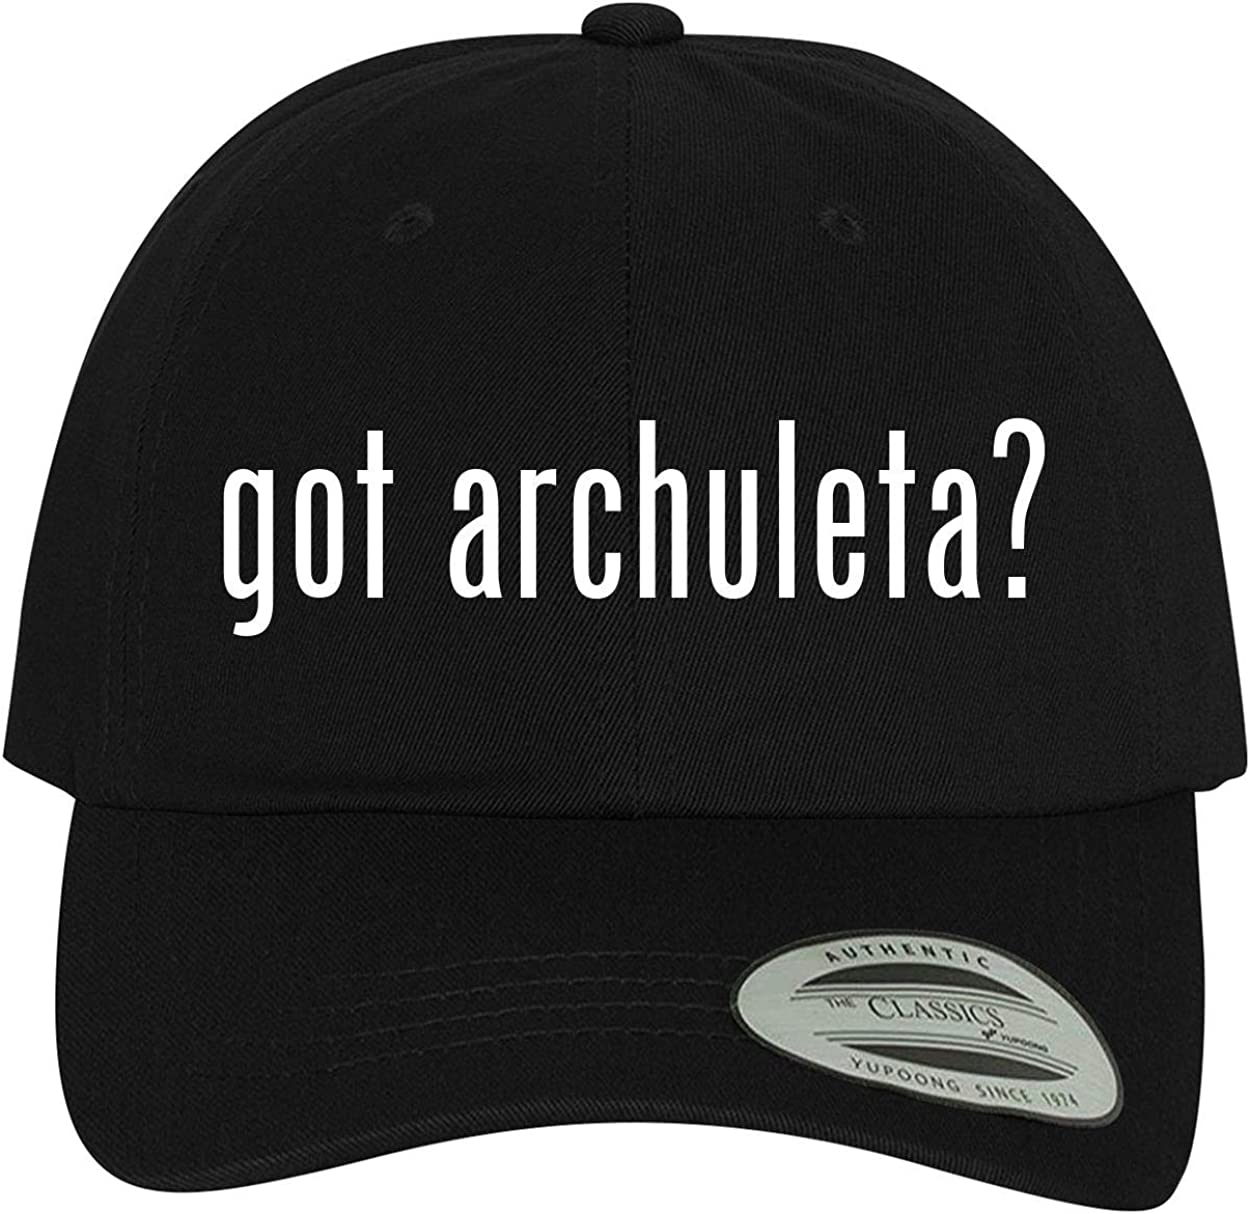 Comfortable Dad Hat Baseball Cap BH Cool Designs got Archuleta?